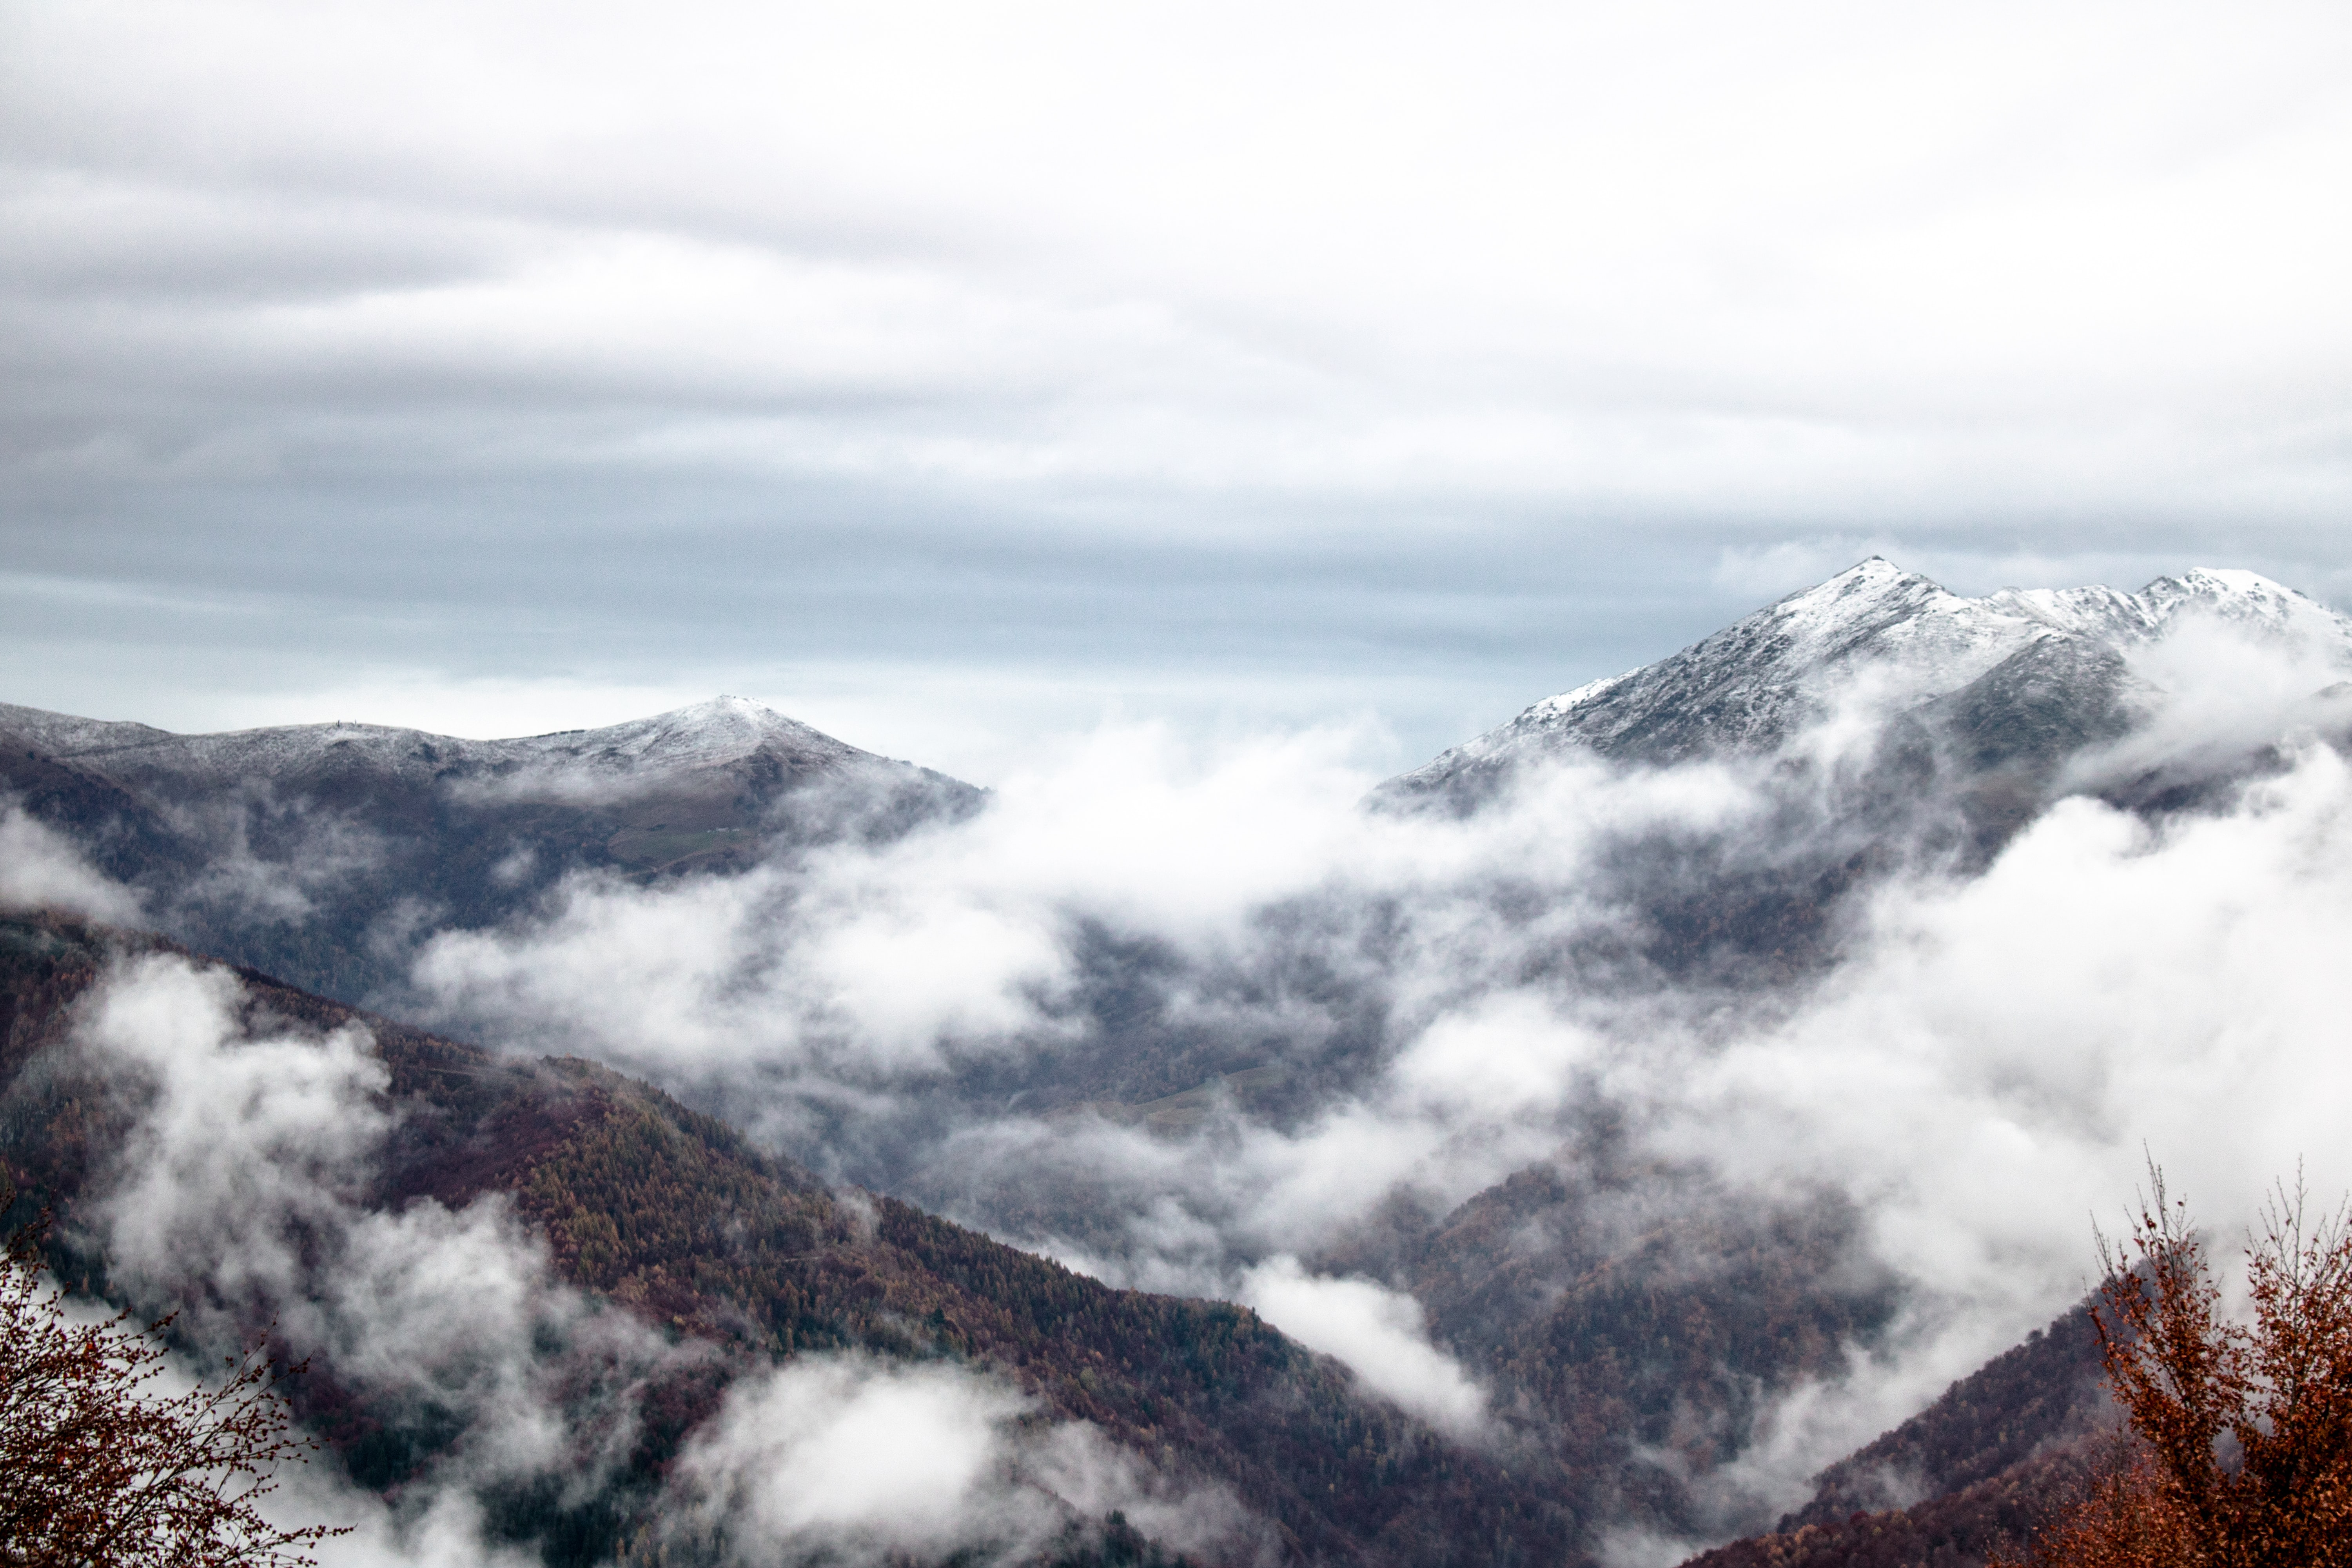 Clouds billow on mountain peaks covered in snow